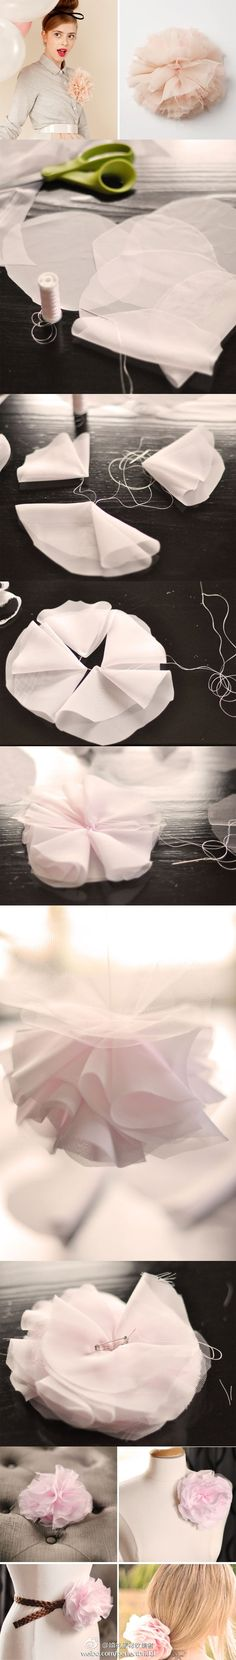 Fabric Needlework Flower Accessory